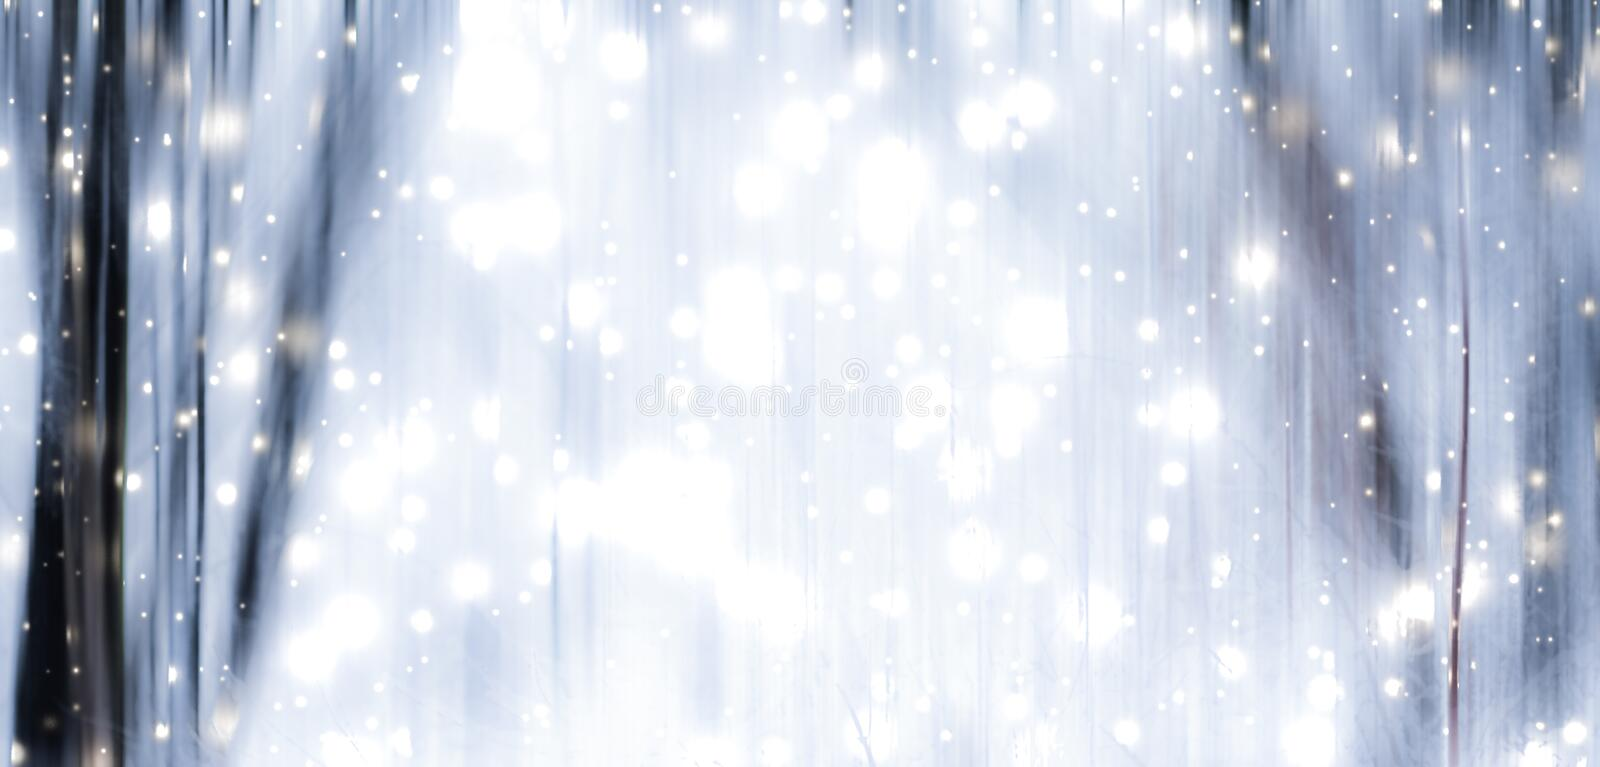 Winter season abstract nature art print and Christmas landscape holiday background, snowy magical forest as luxury brand postcard. Holidays branding, fantasy and royalty free stock photography